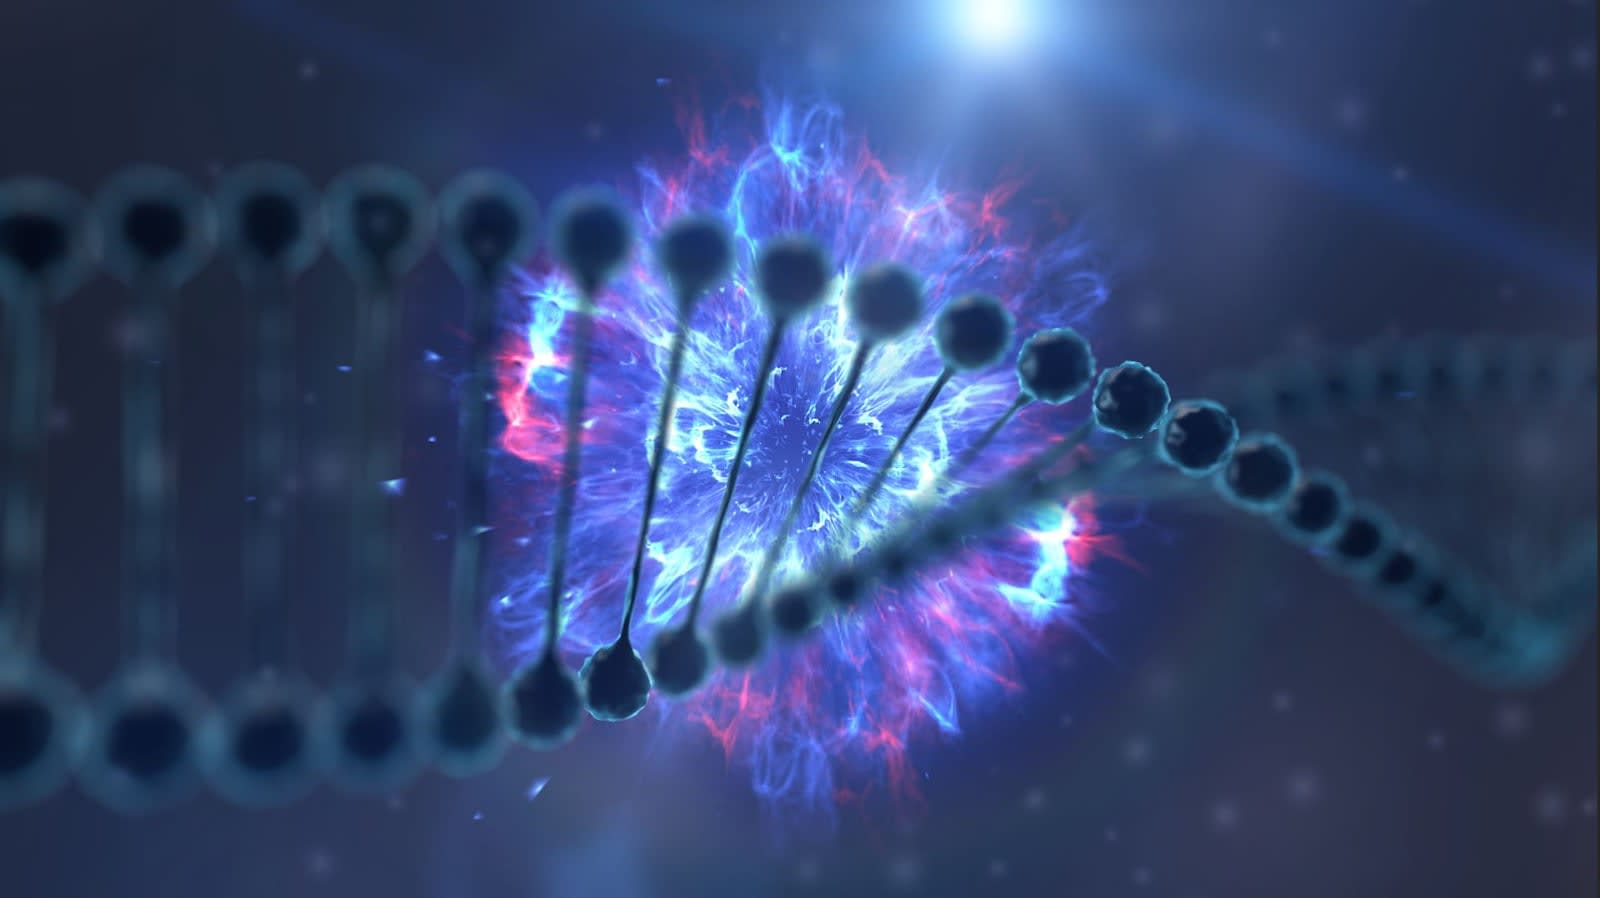 Hard drives of the future could be made of DNA